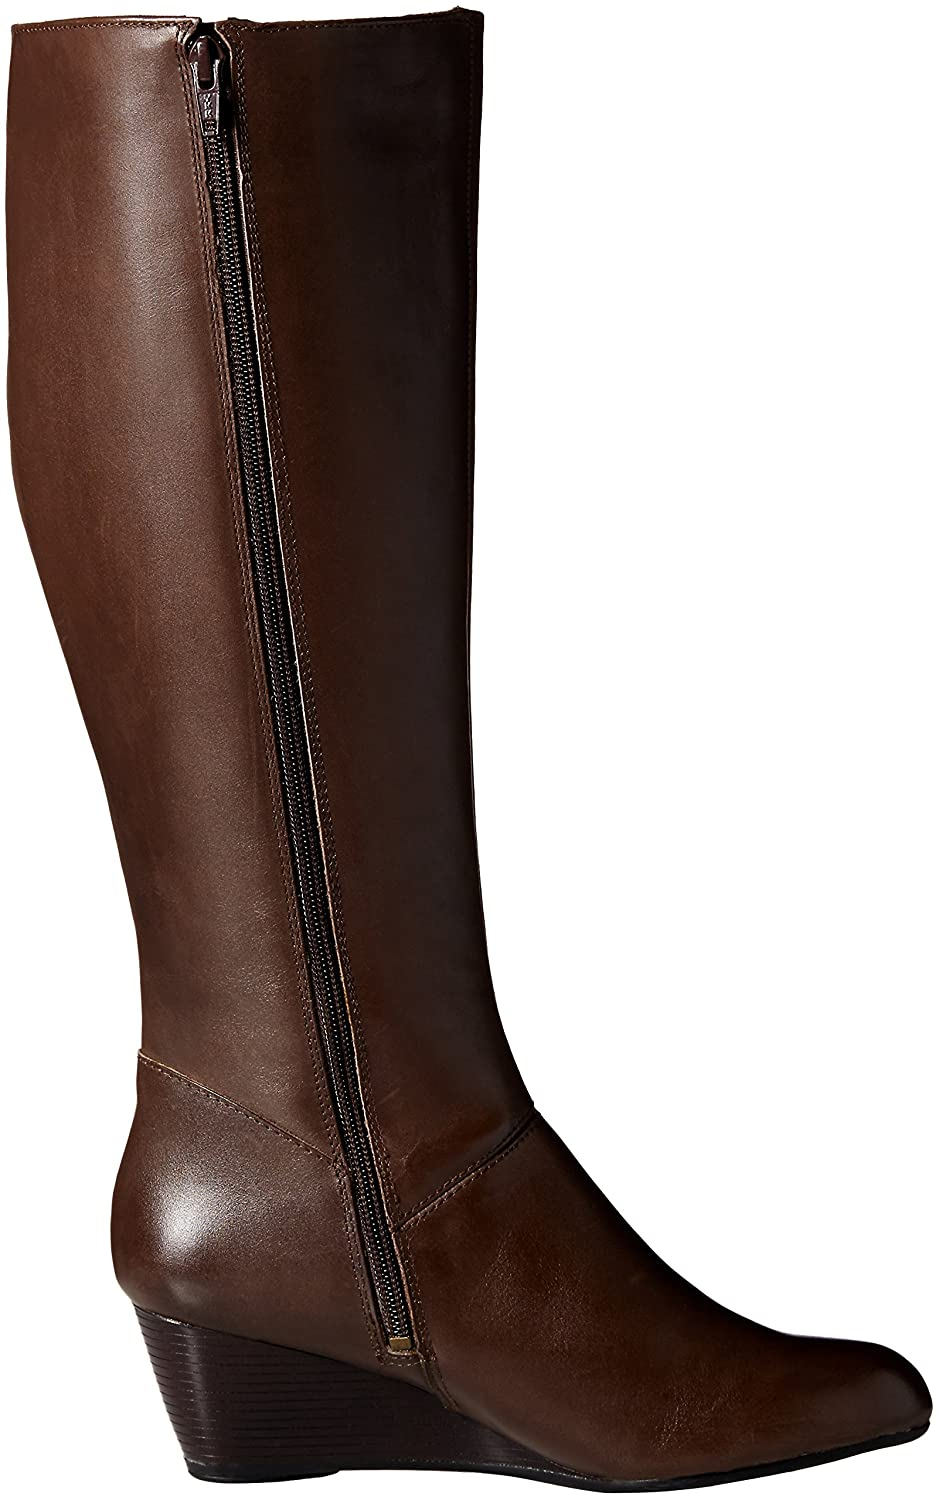 Hush Puppies Women's Pynical Rhea Boot B019YMYS8E 8 B(M) US|Dark Brown Leather